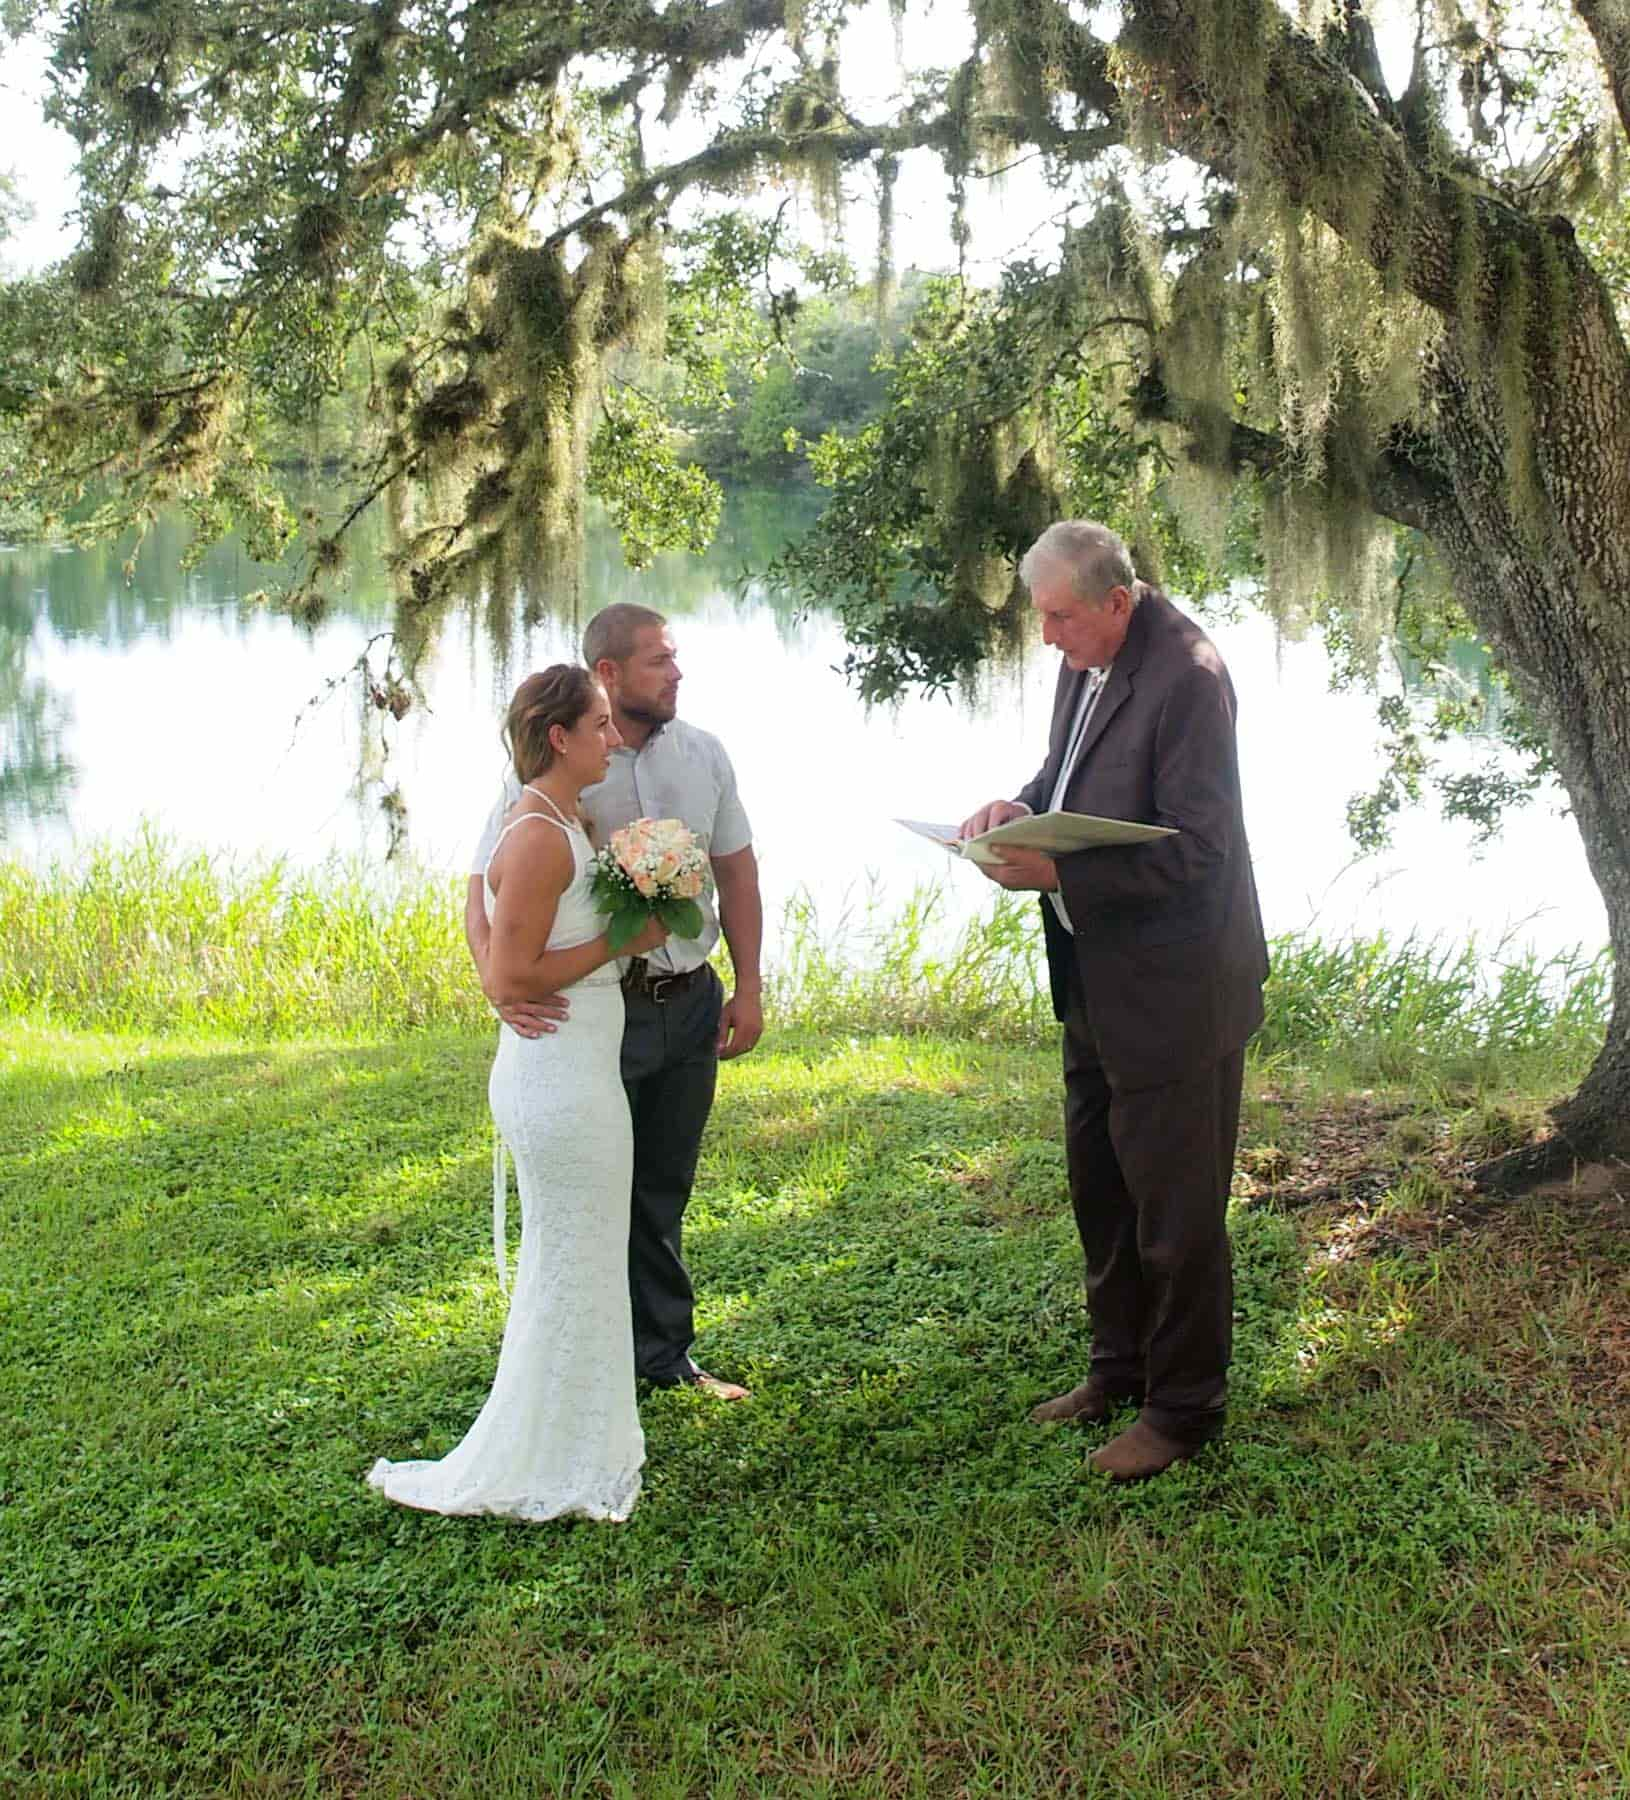 Couple eloping under a tree in front of a lake